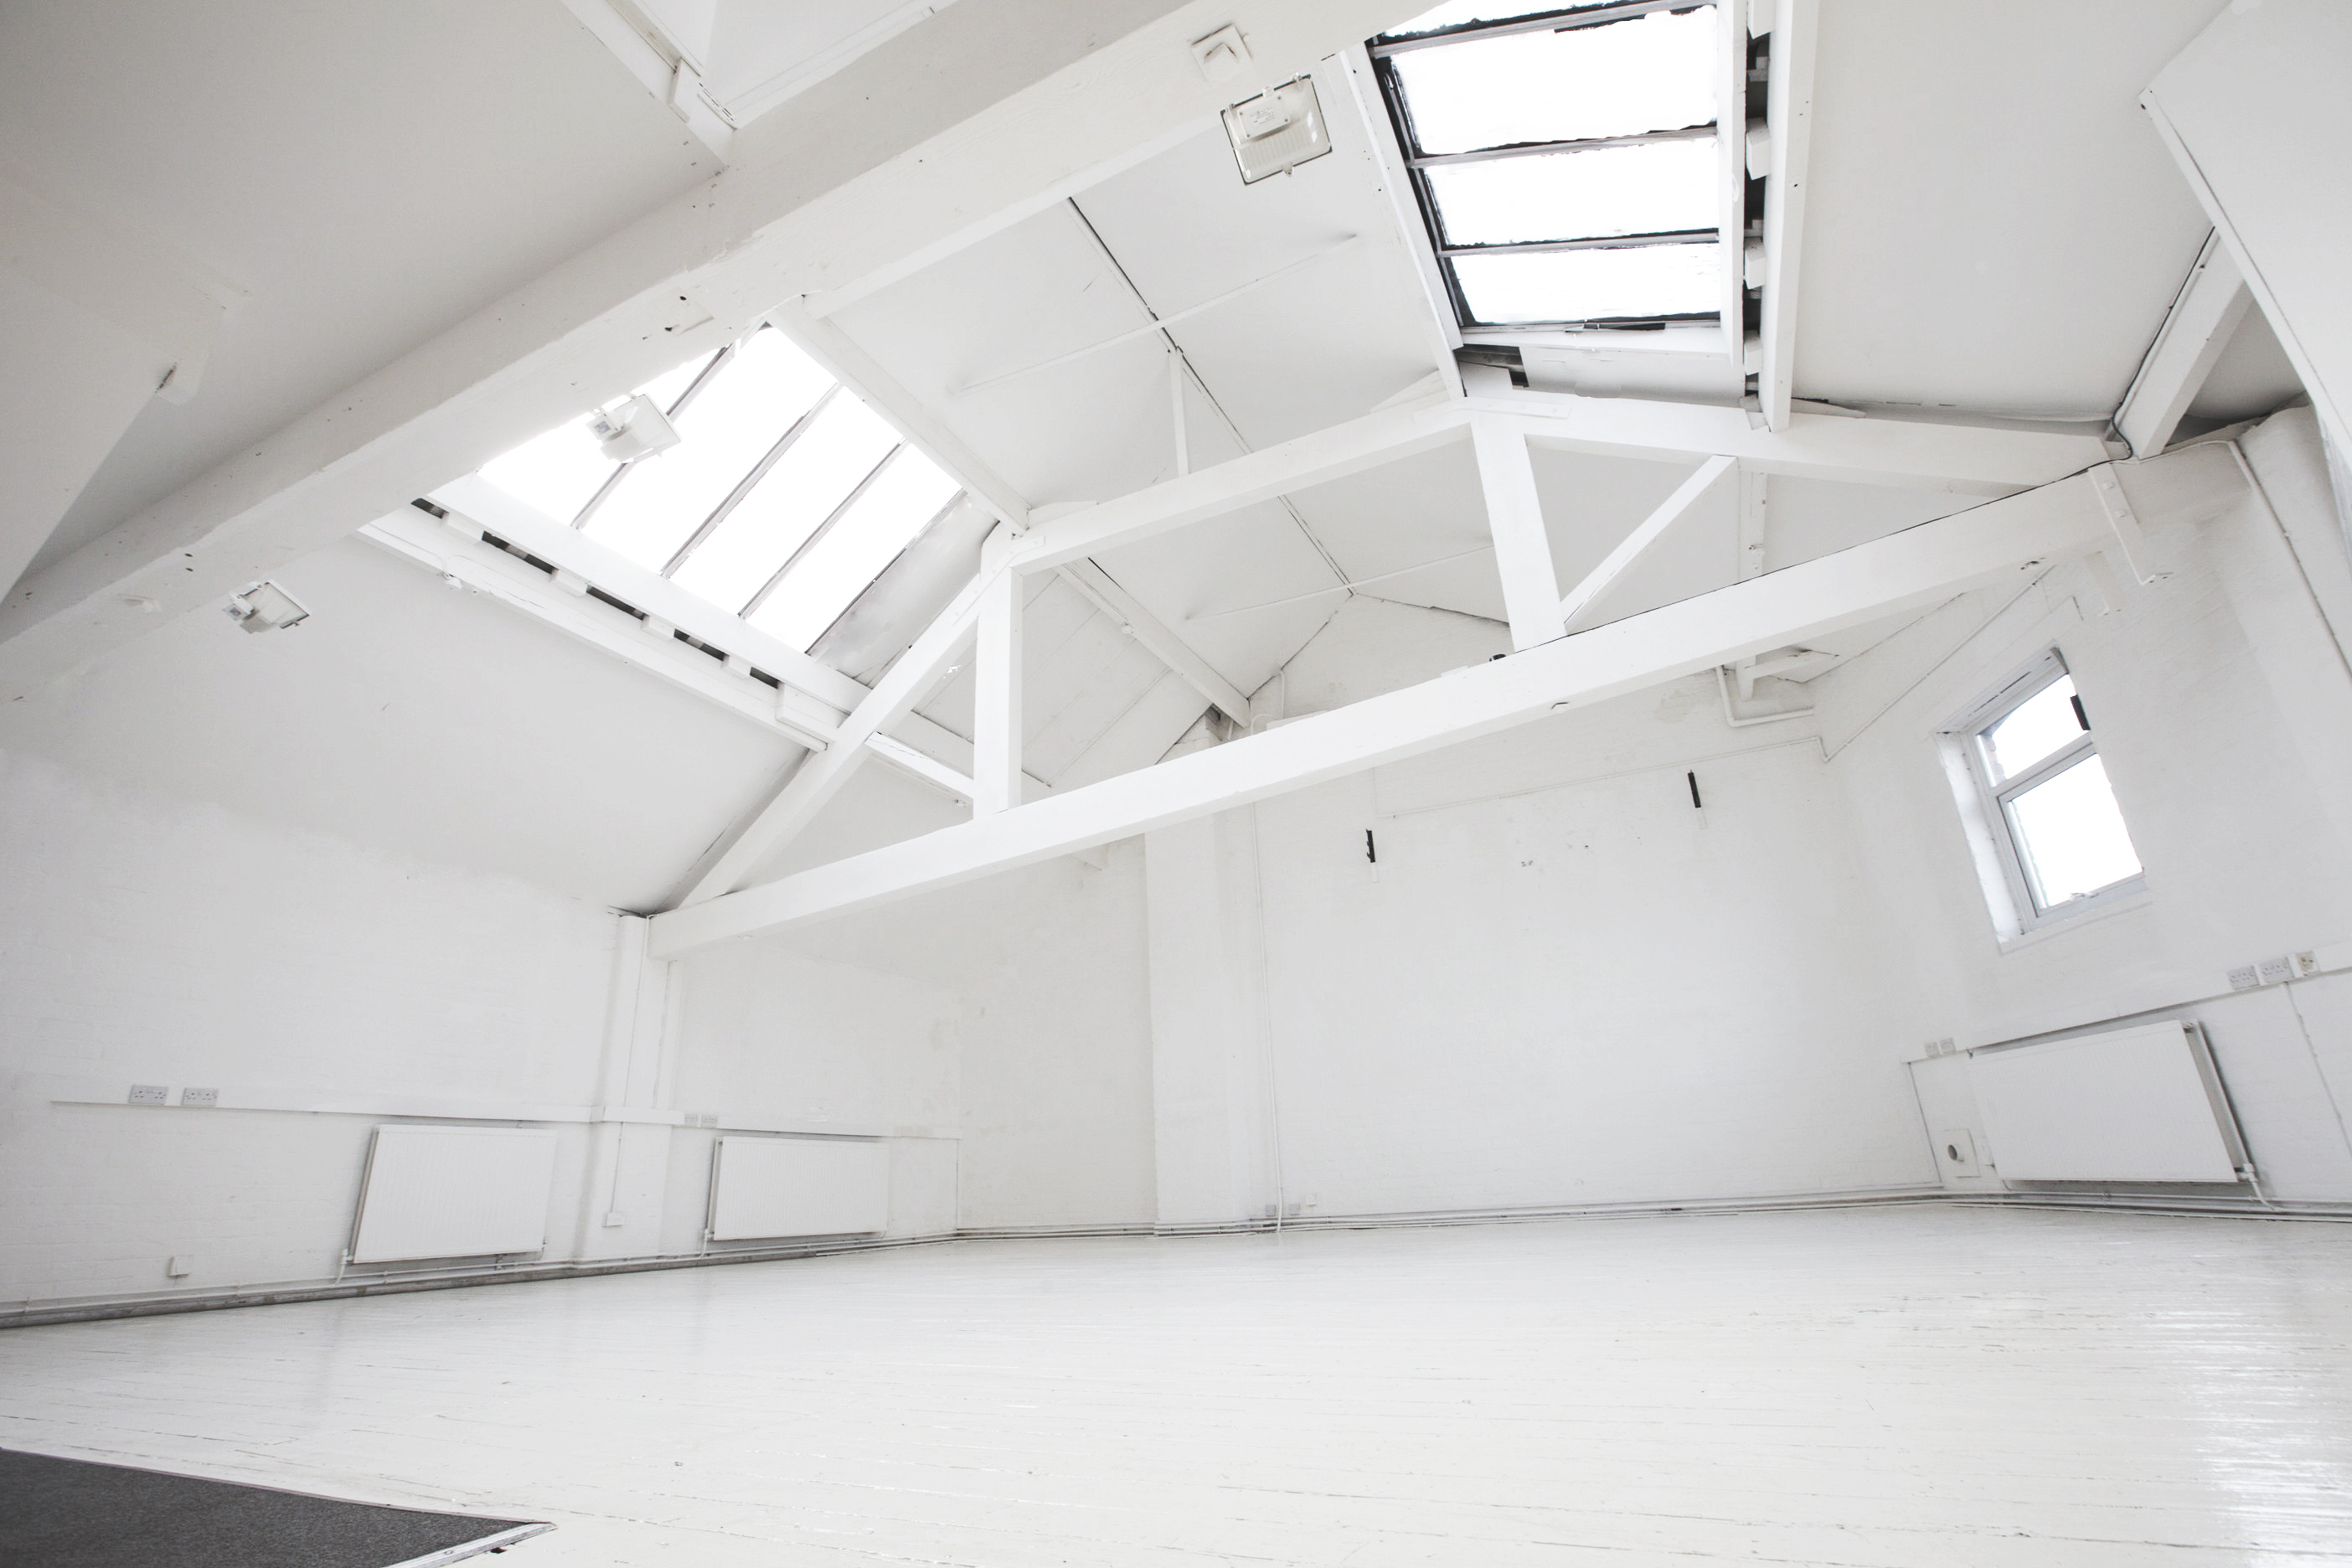 For Some Time Now Any Studio With Windows And The Ability To Let In Light Have Been Announcing Themselves As Only Daylight Enter City